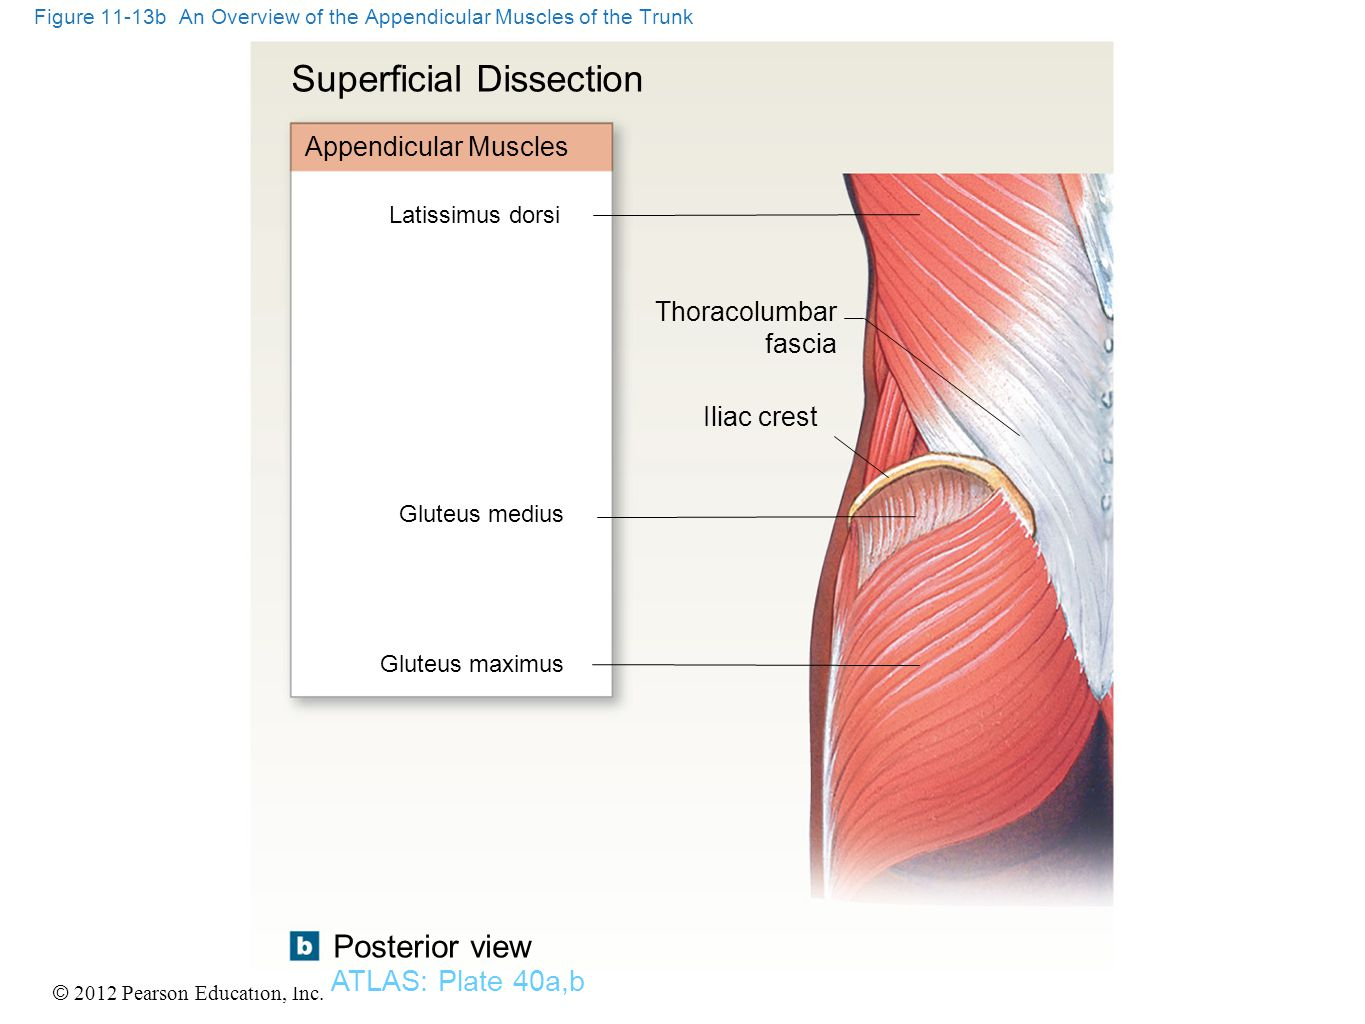 © 2012 Pearson Education, Inc. Figure 11-13b An Overview of the Appendicular Muscles of the Trunk ATLAS: Plate 40a,b Posterior view Latissimus dorsi T